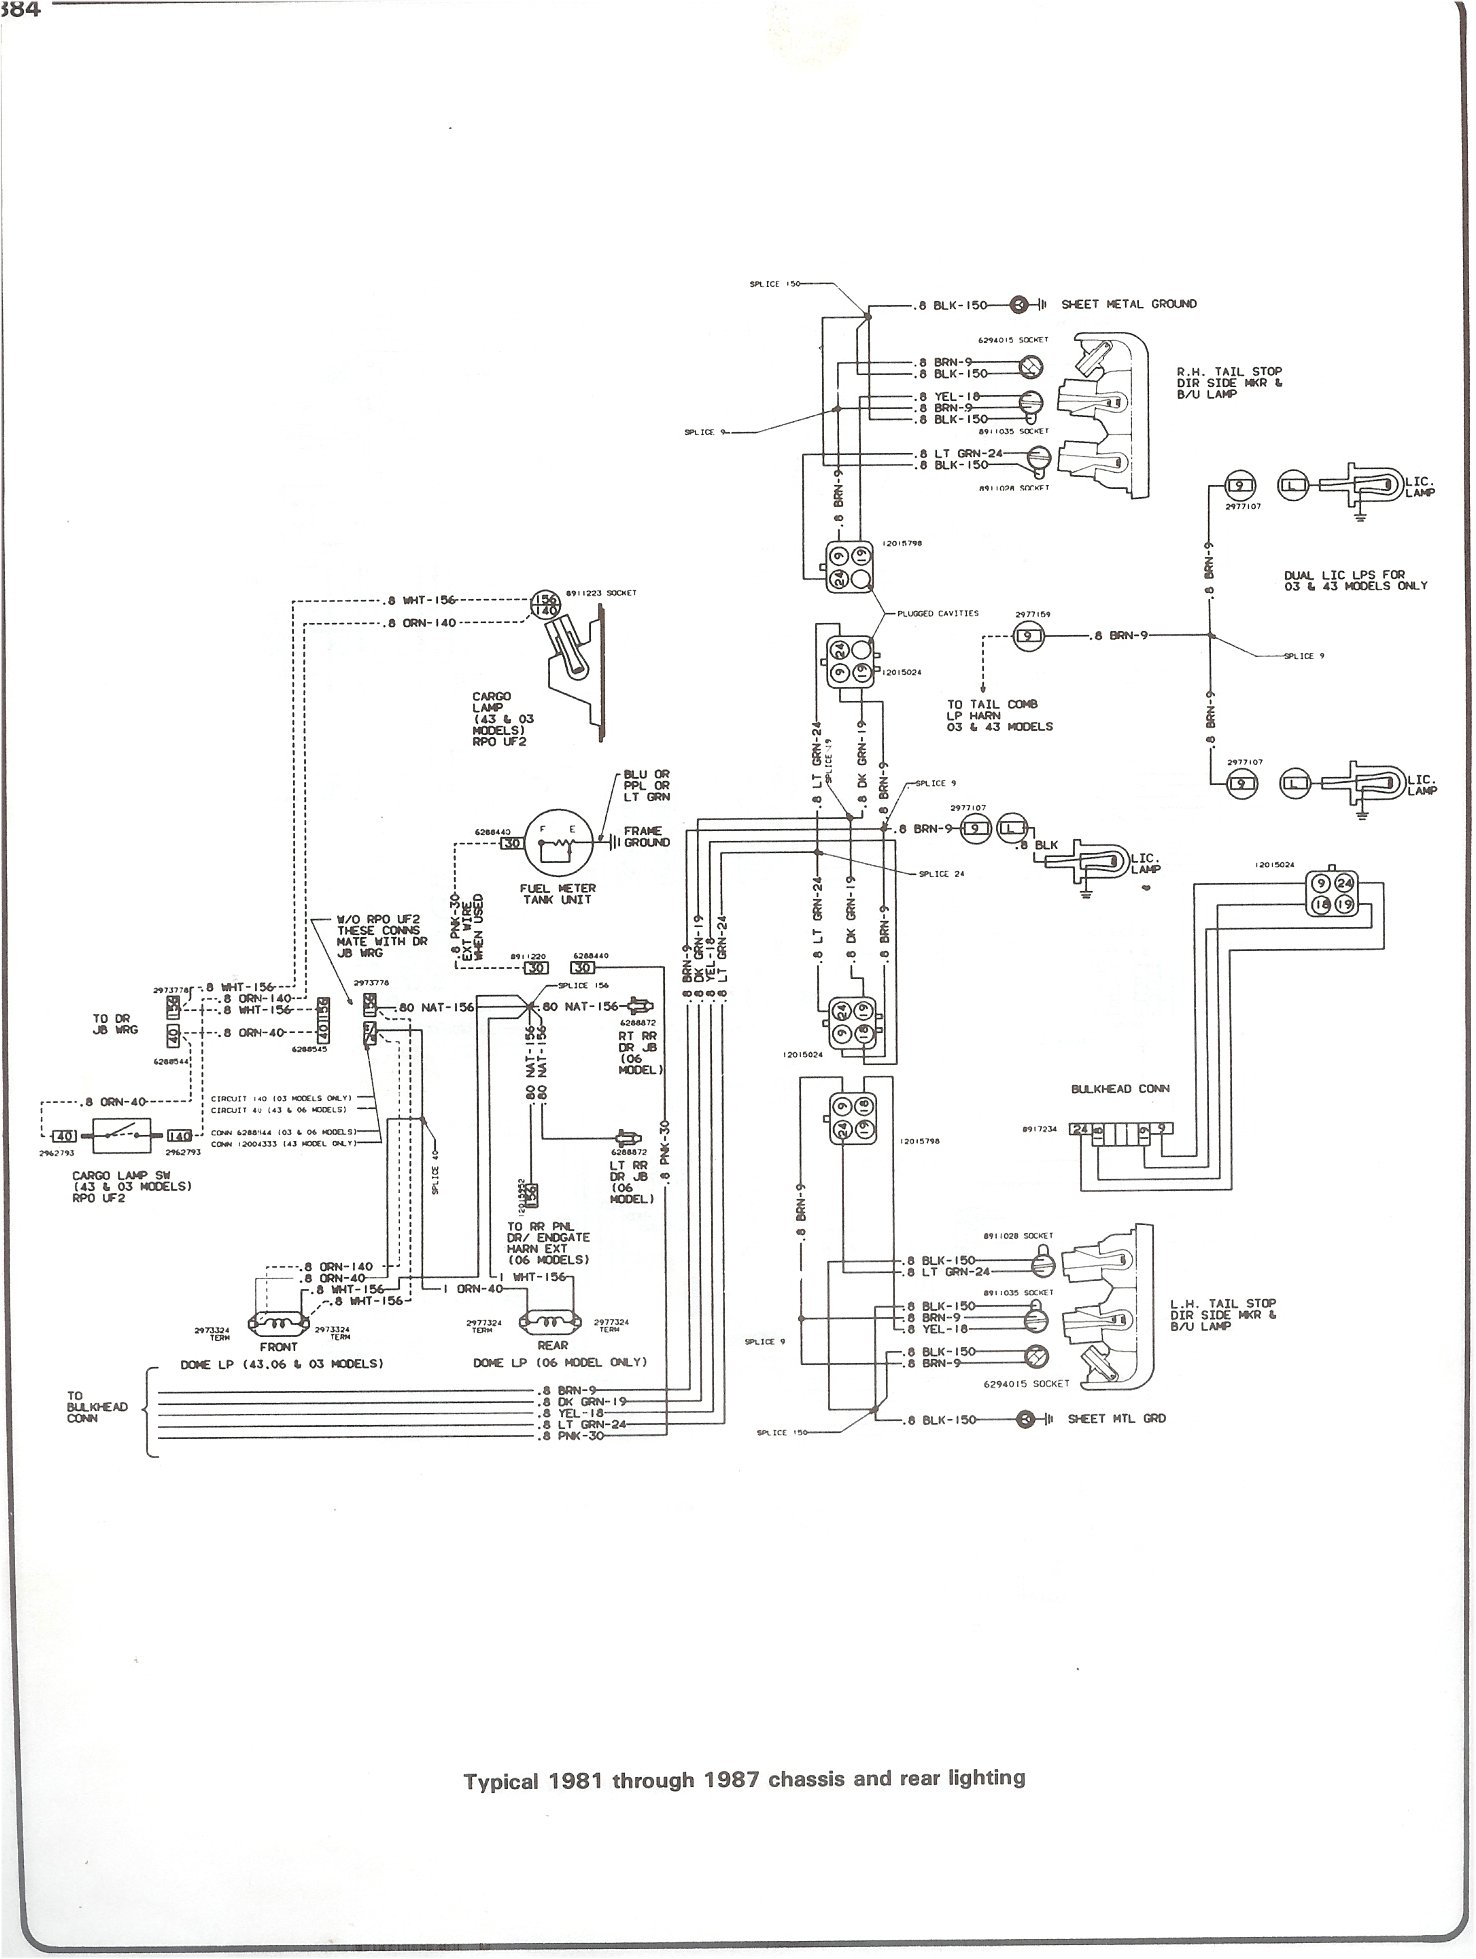 81 87_chass_rr_light complete 73 87 wiring diagrams 1985 chevy c10 fuse box diagram at panicattacktreatment.co